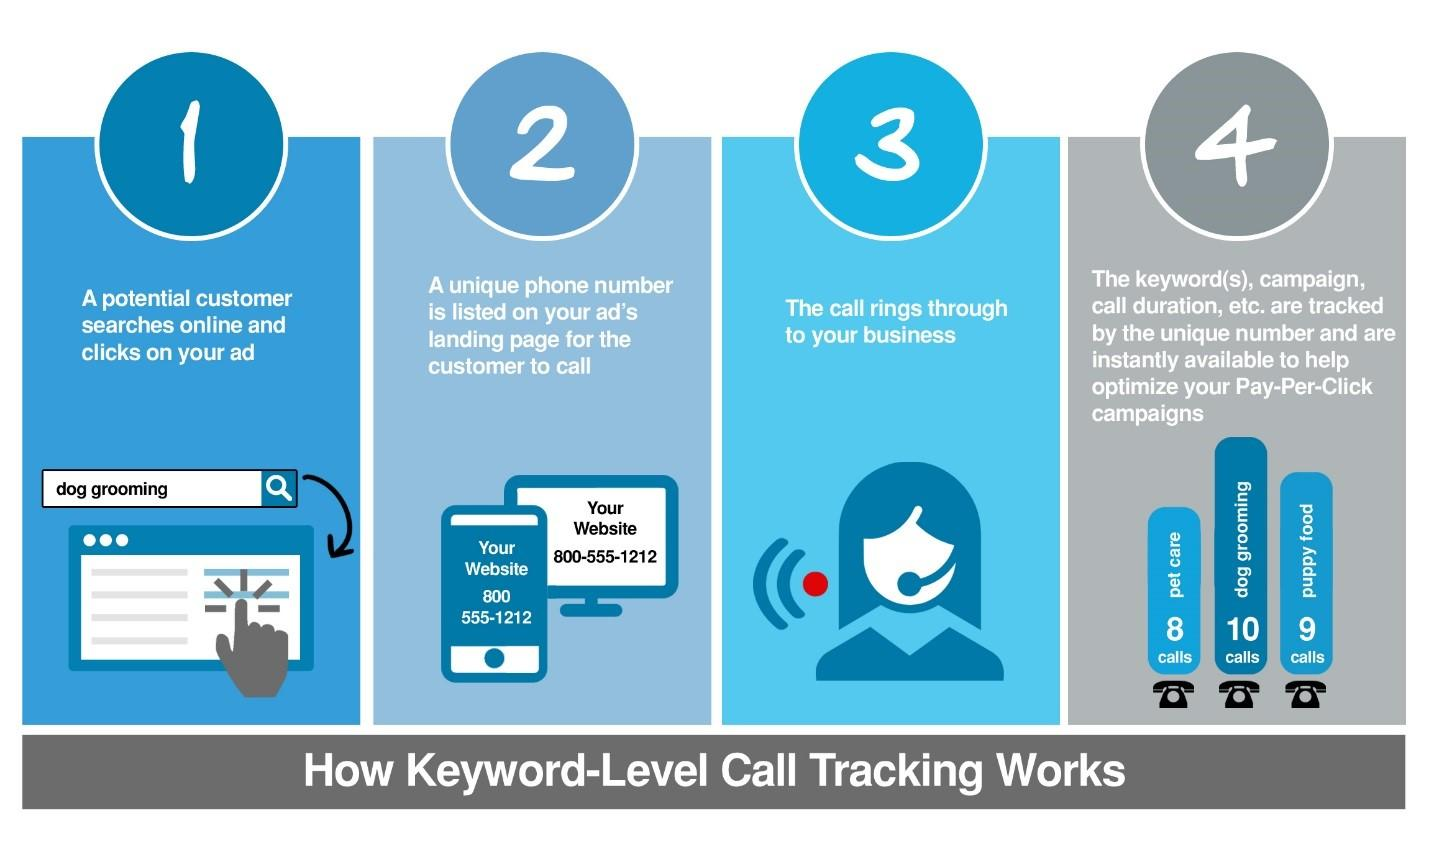 Call abandon rate how keyword-level call tracking works